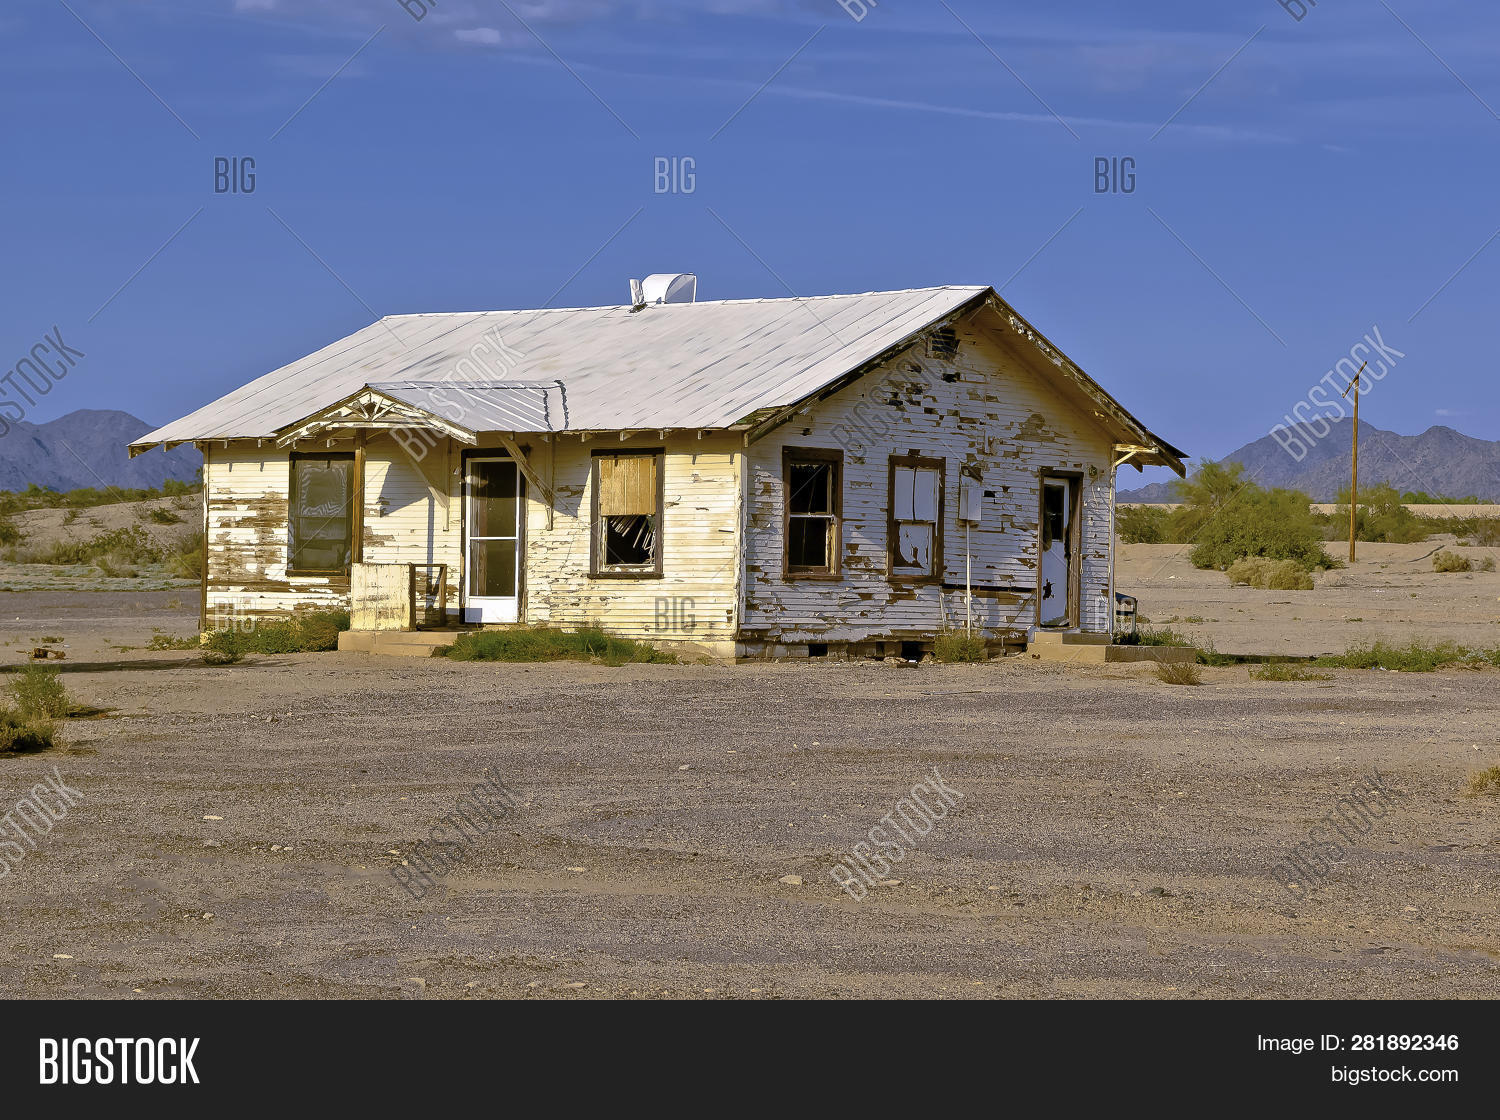 Abandoned House Remote Image & Photo (Free Trial) | Bigstock